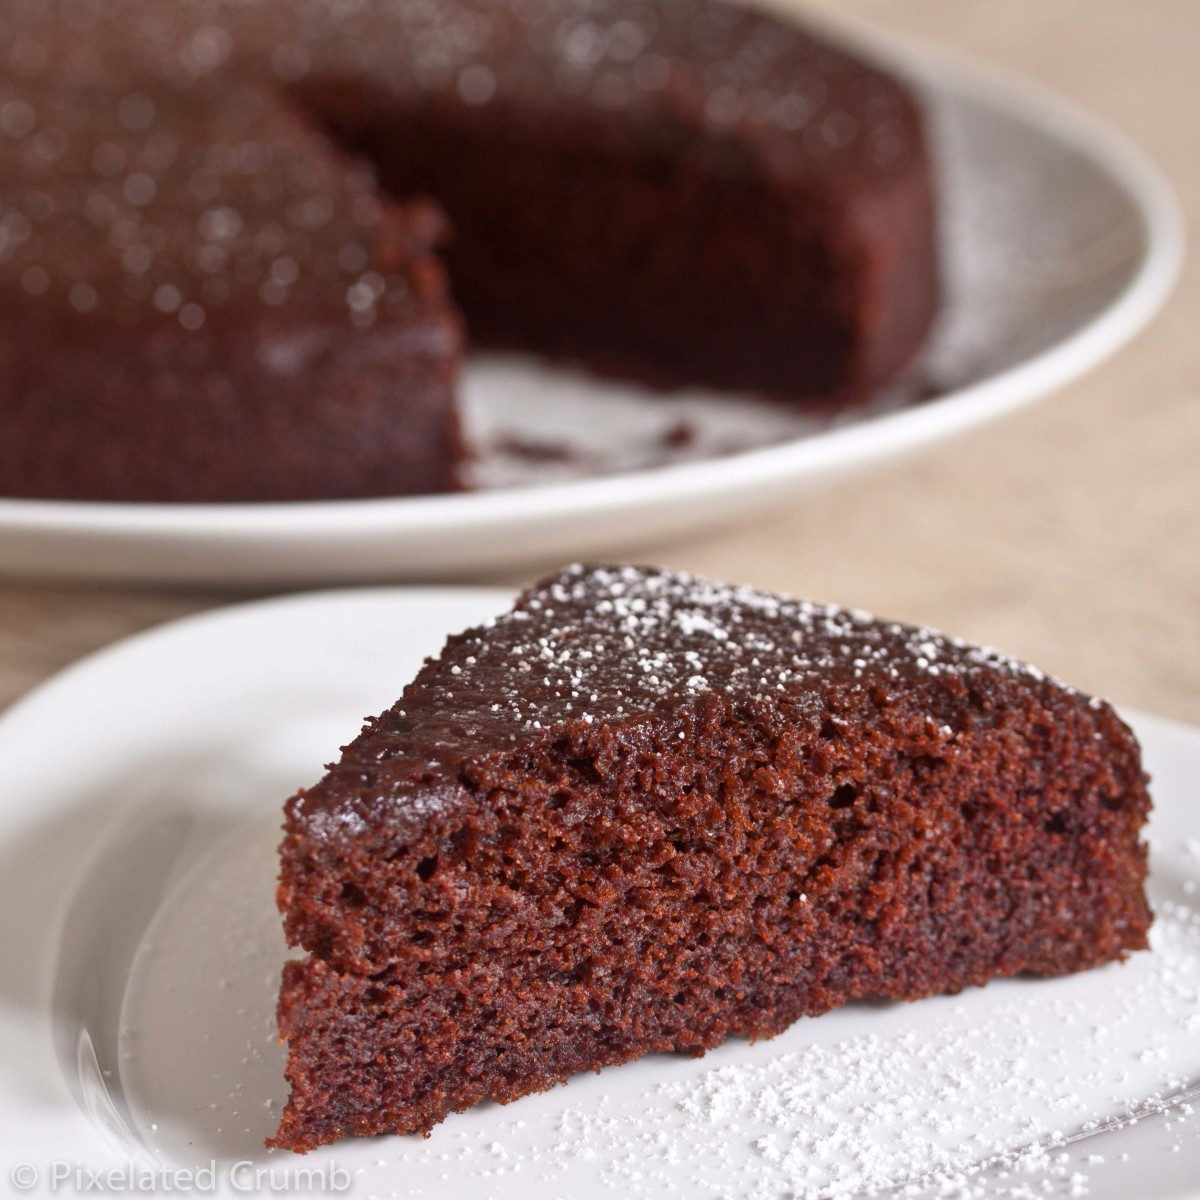 How do you make a delicious chocolate cake? A secret ingredient to make it taste chocolatey not plain.